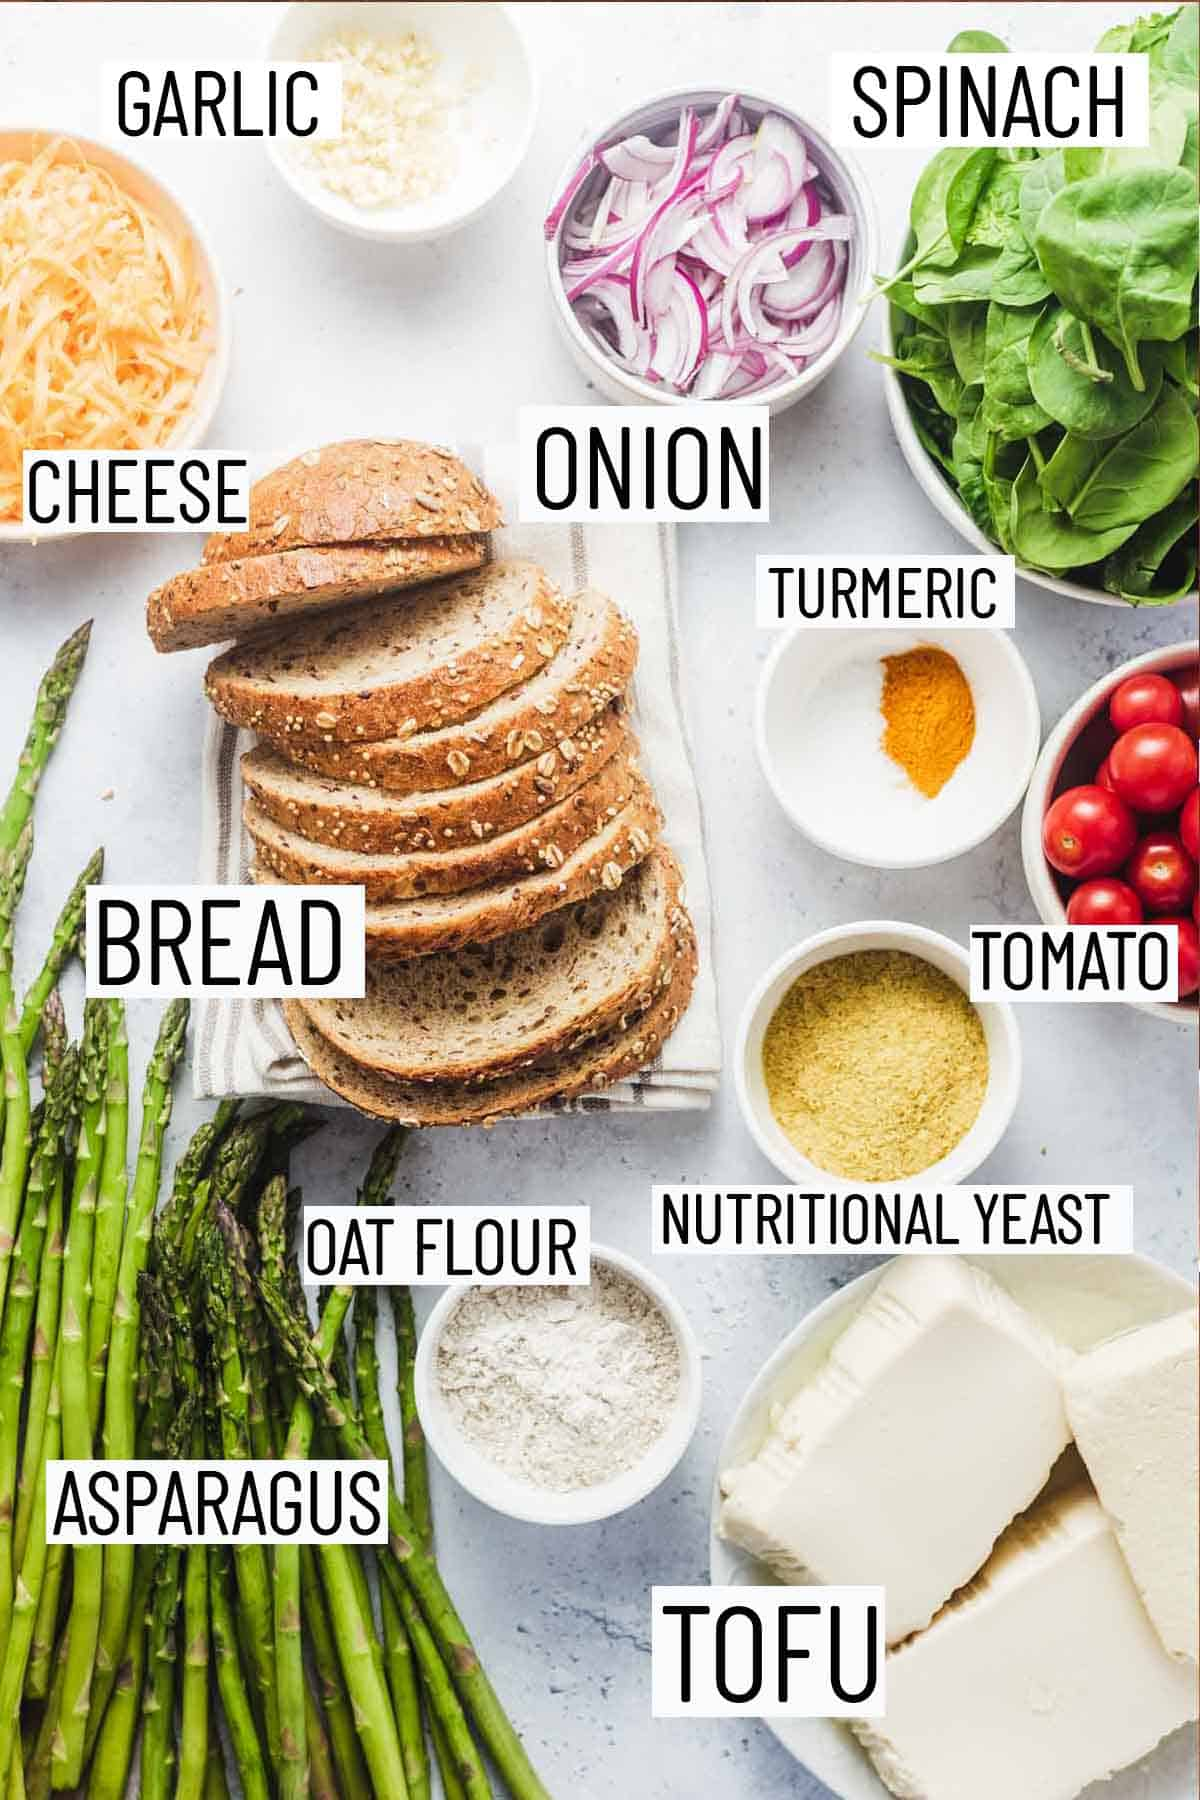 Flat lay image of recipe ingredients including bread, spinach, onion, garlic, cheese, oat flour, tofu, asparagus, nutritional yeast, tomato, and turmeric.